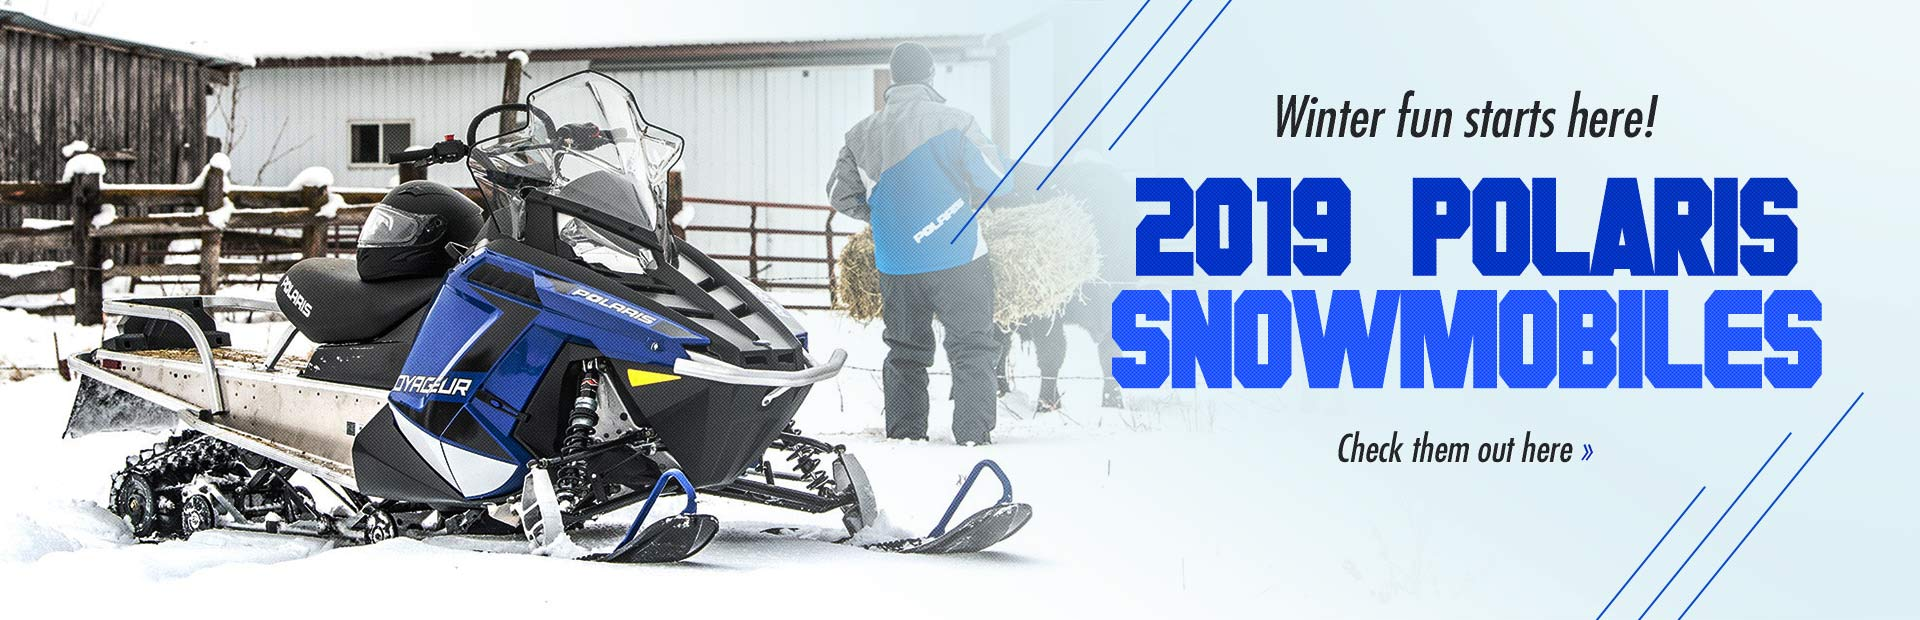 2019 Polaris Snowmobiles: Click here to view the models.